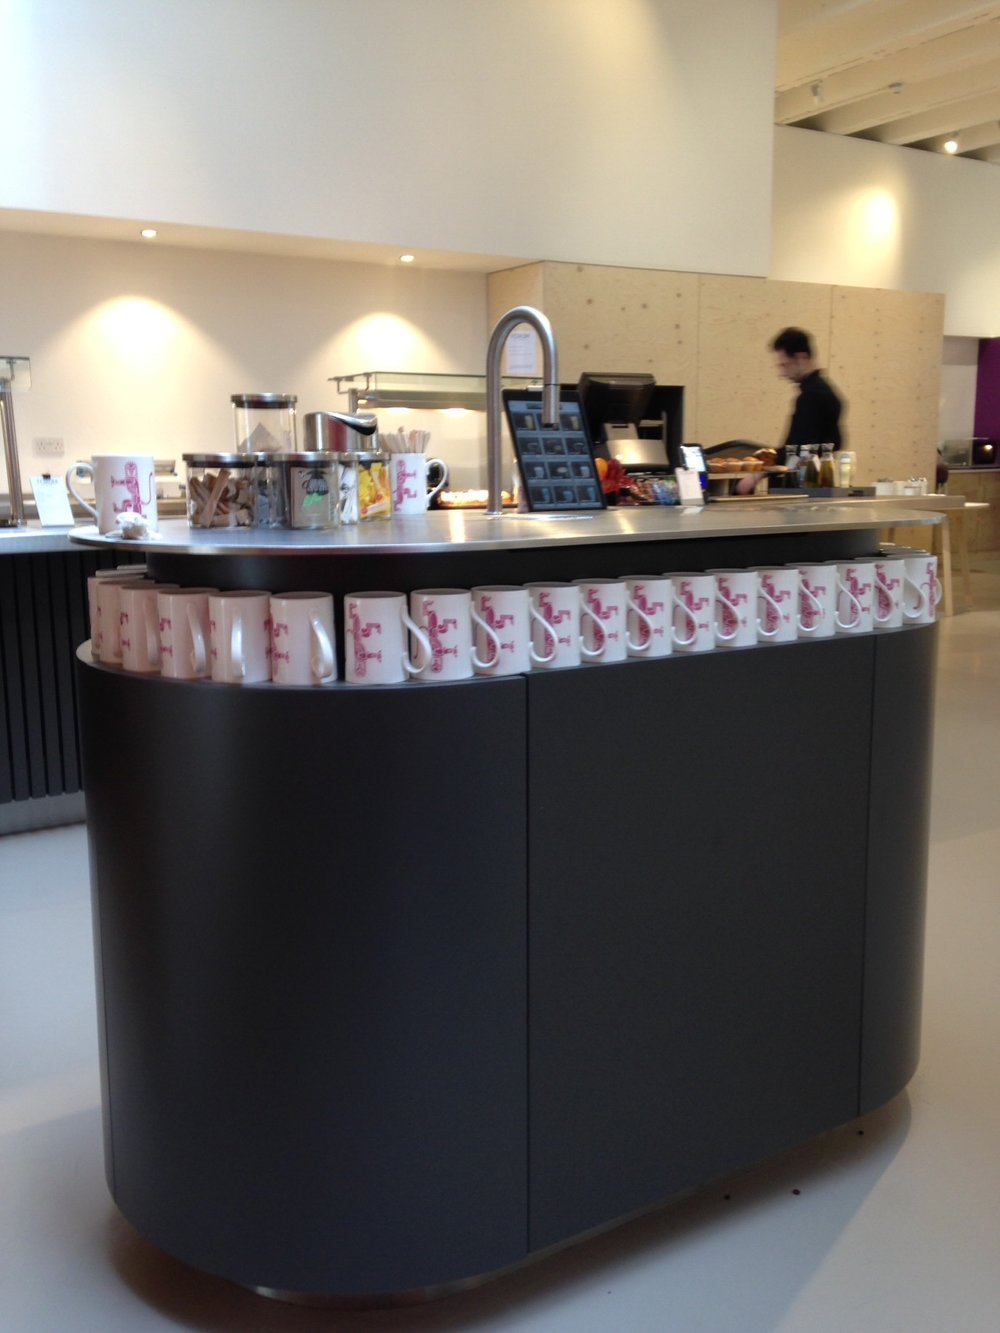 TopBrewer Case Study: Coffee is the center for social